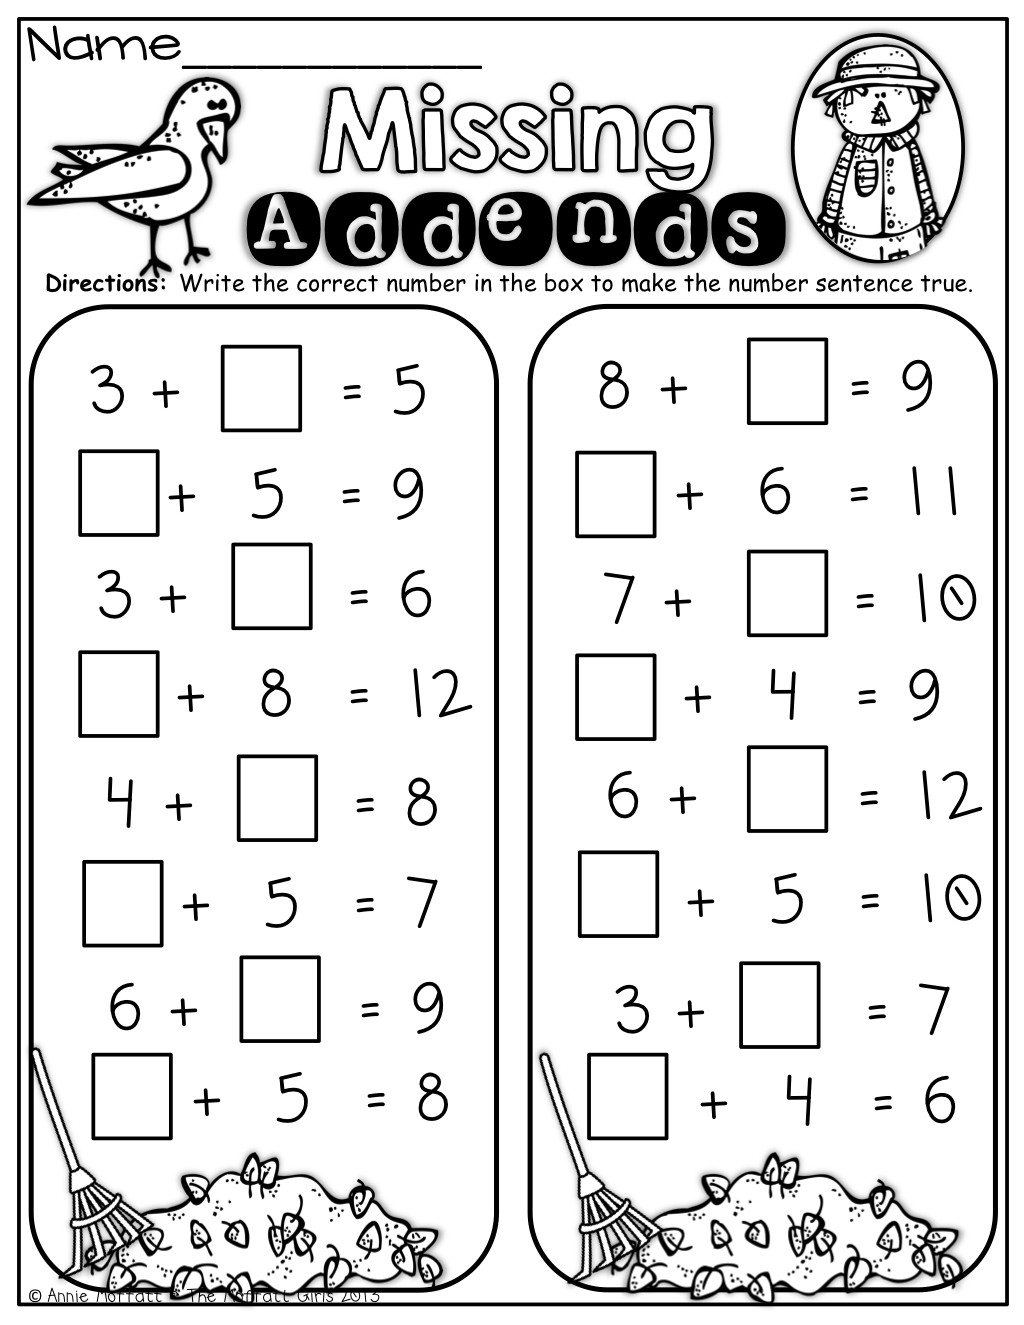 Missing Addend Worksheets First Grade Missing Addend Worksheet 1st Grade